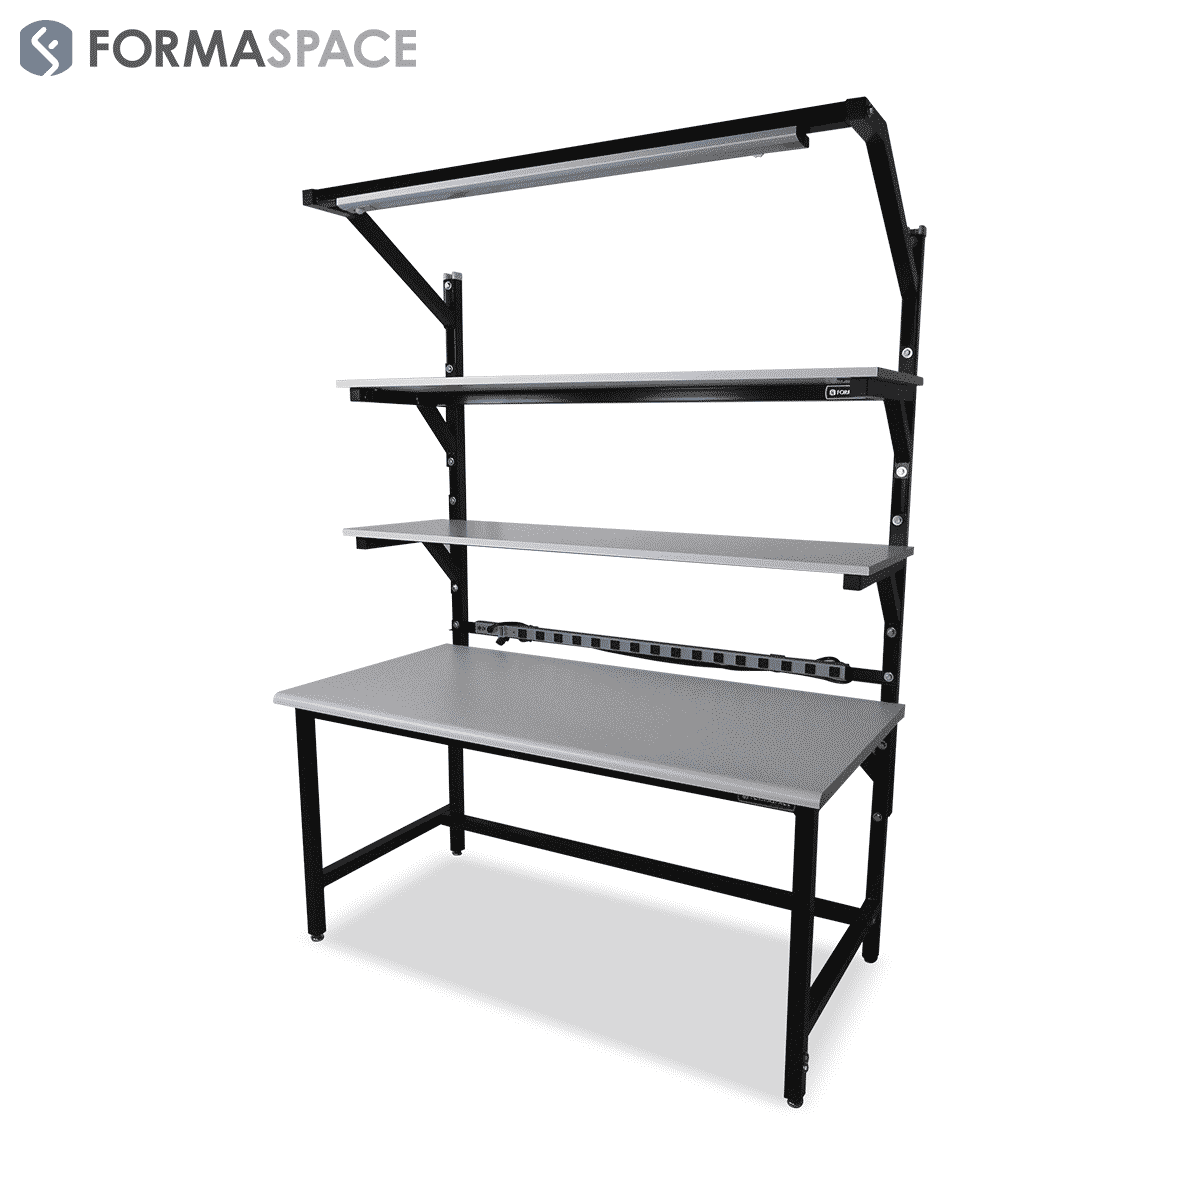 Benchmarx with Gray Laminate & Textured Black Frame